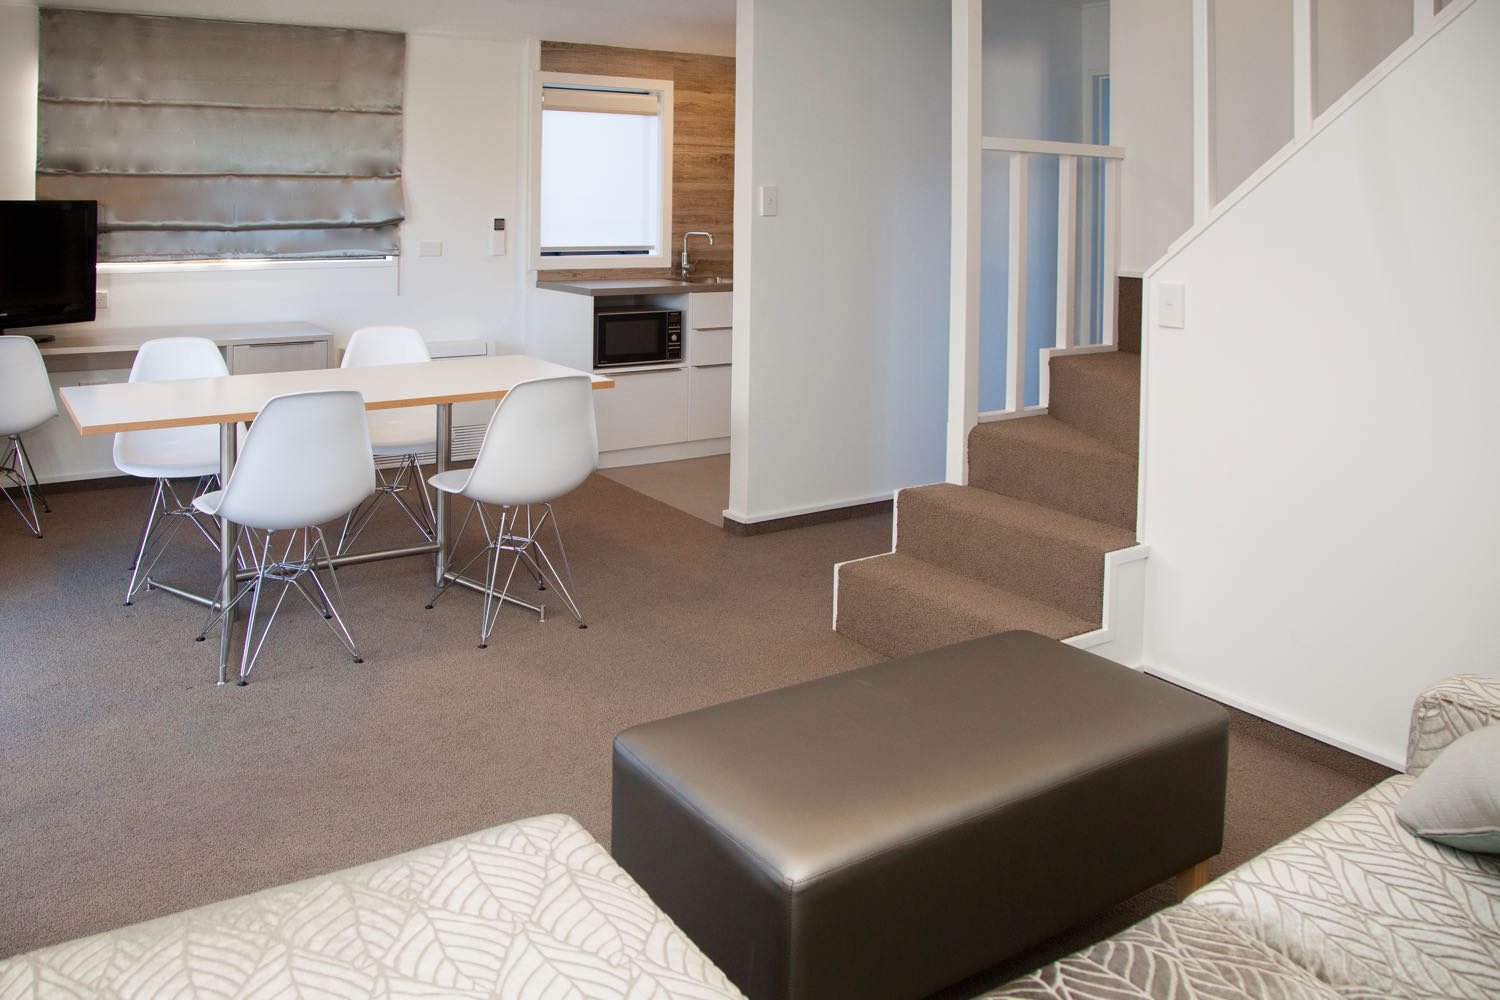 aria 2 bedroom suite. Aria 2 Bedroom Suite  In Clifton Cape Town Two dact us